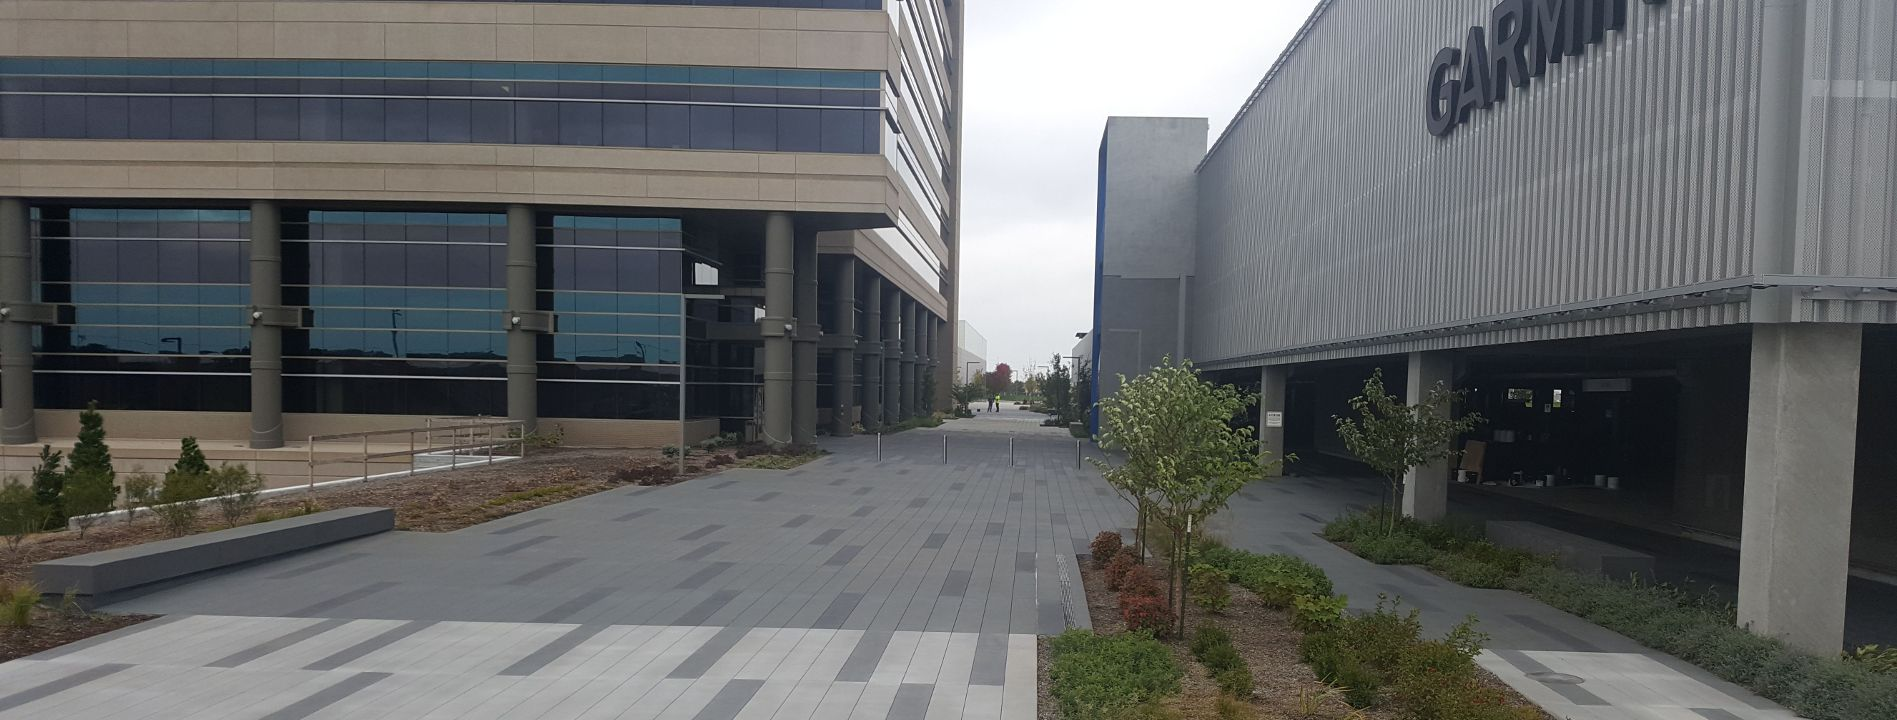 Beautiful decorative concrete at the Garmin Expansion Pedestrian Plaza using Bomanite Exposed Aggregate Systems with Bomanite Sandscape Texture in Olathe, KS.